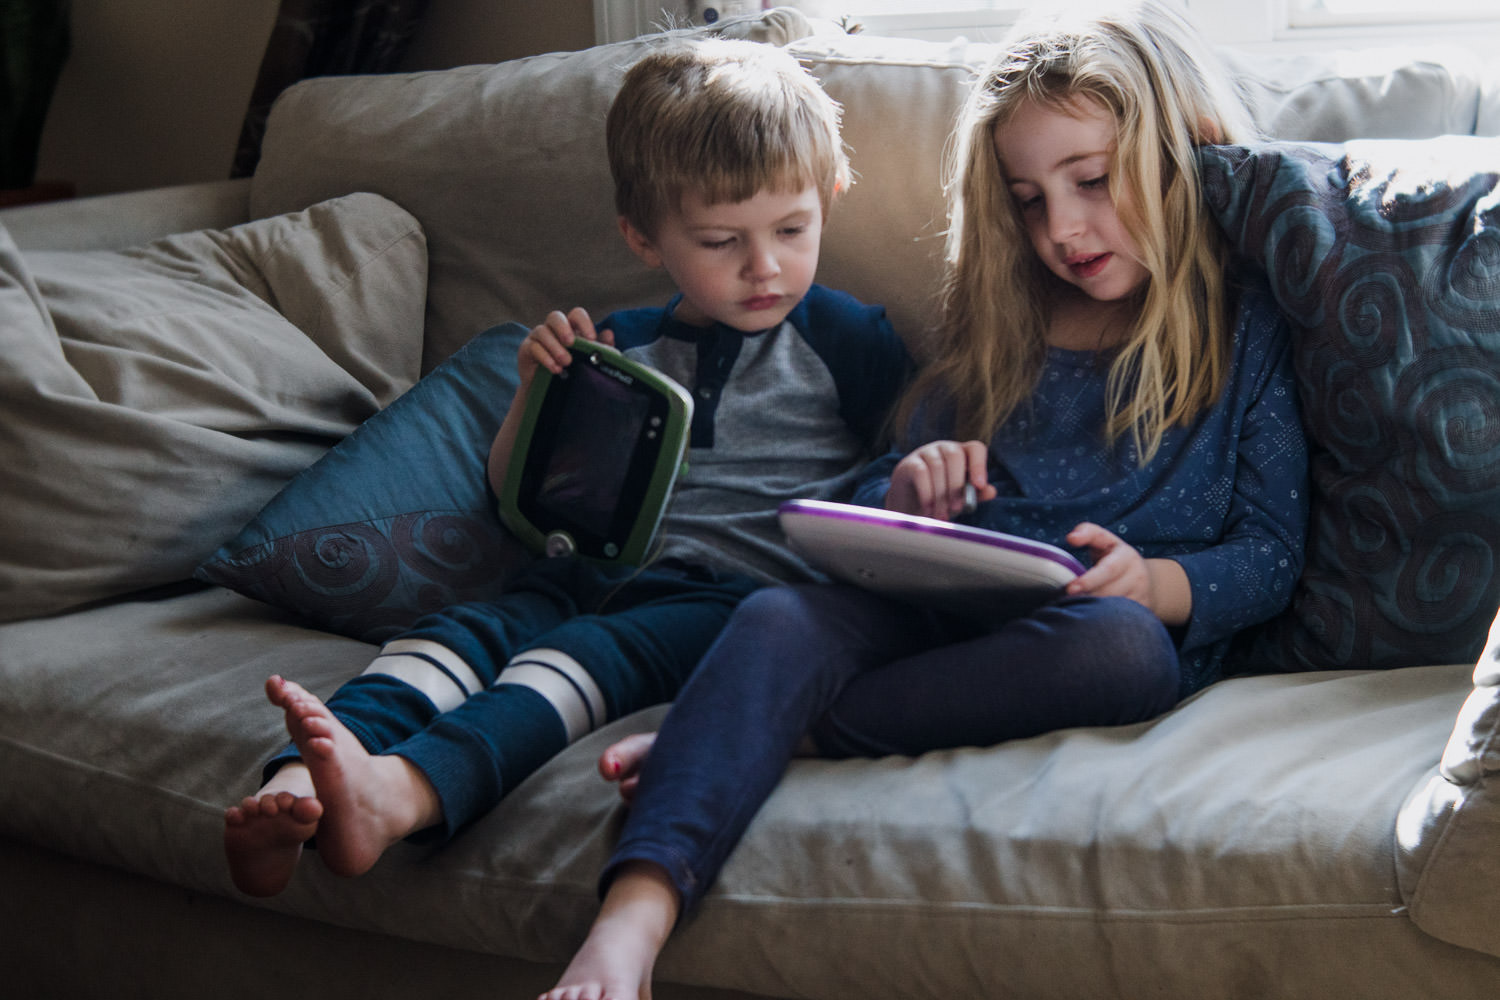 Two children sit on a couch and play with a tablet.